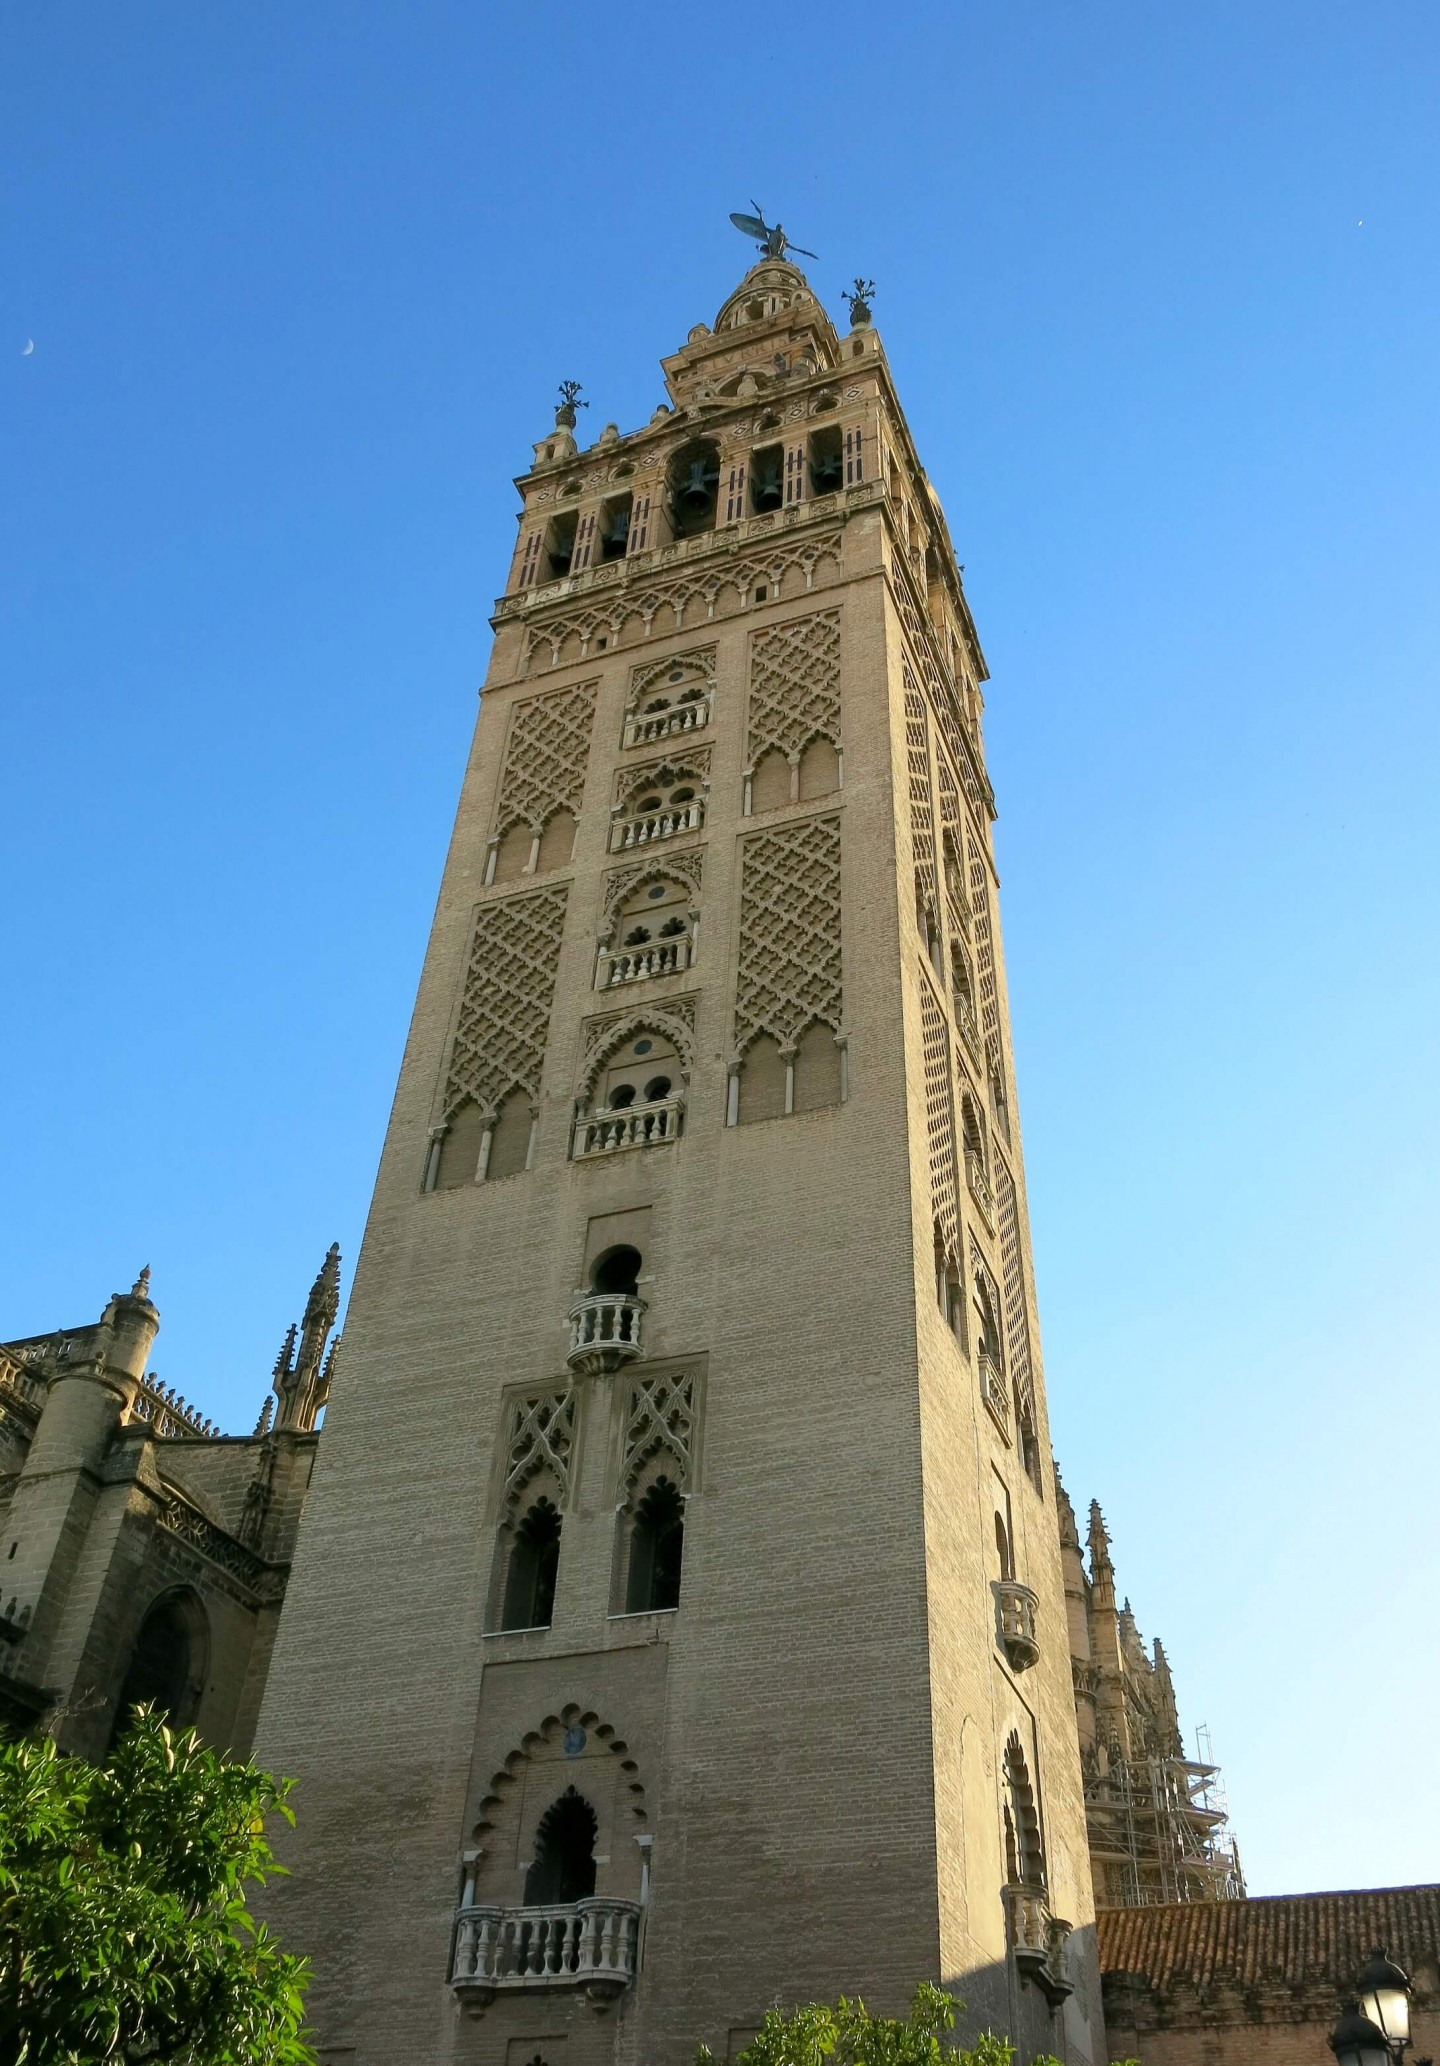 Get panoramic views of Seville from the top of The Giralda tower at Seville Cathedral. Find out other place to get great views over on Dalton-Banks.co.uk